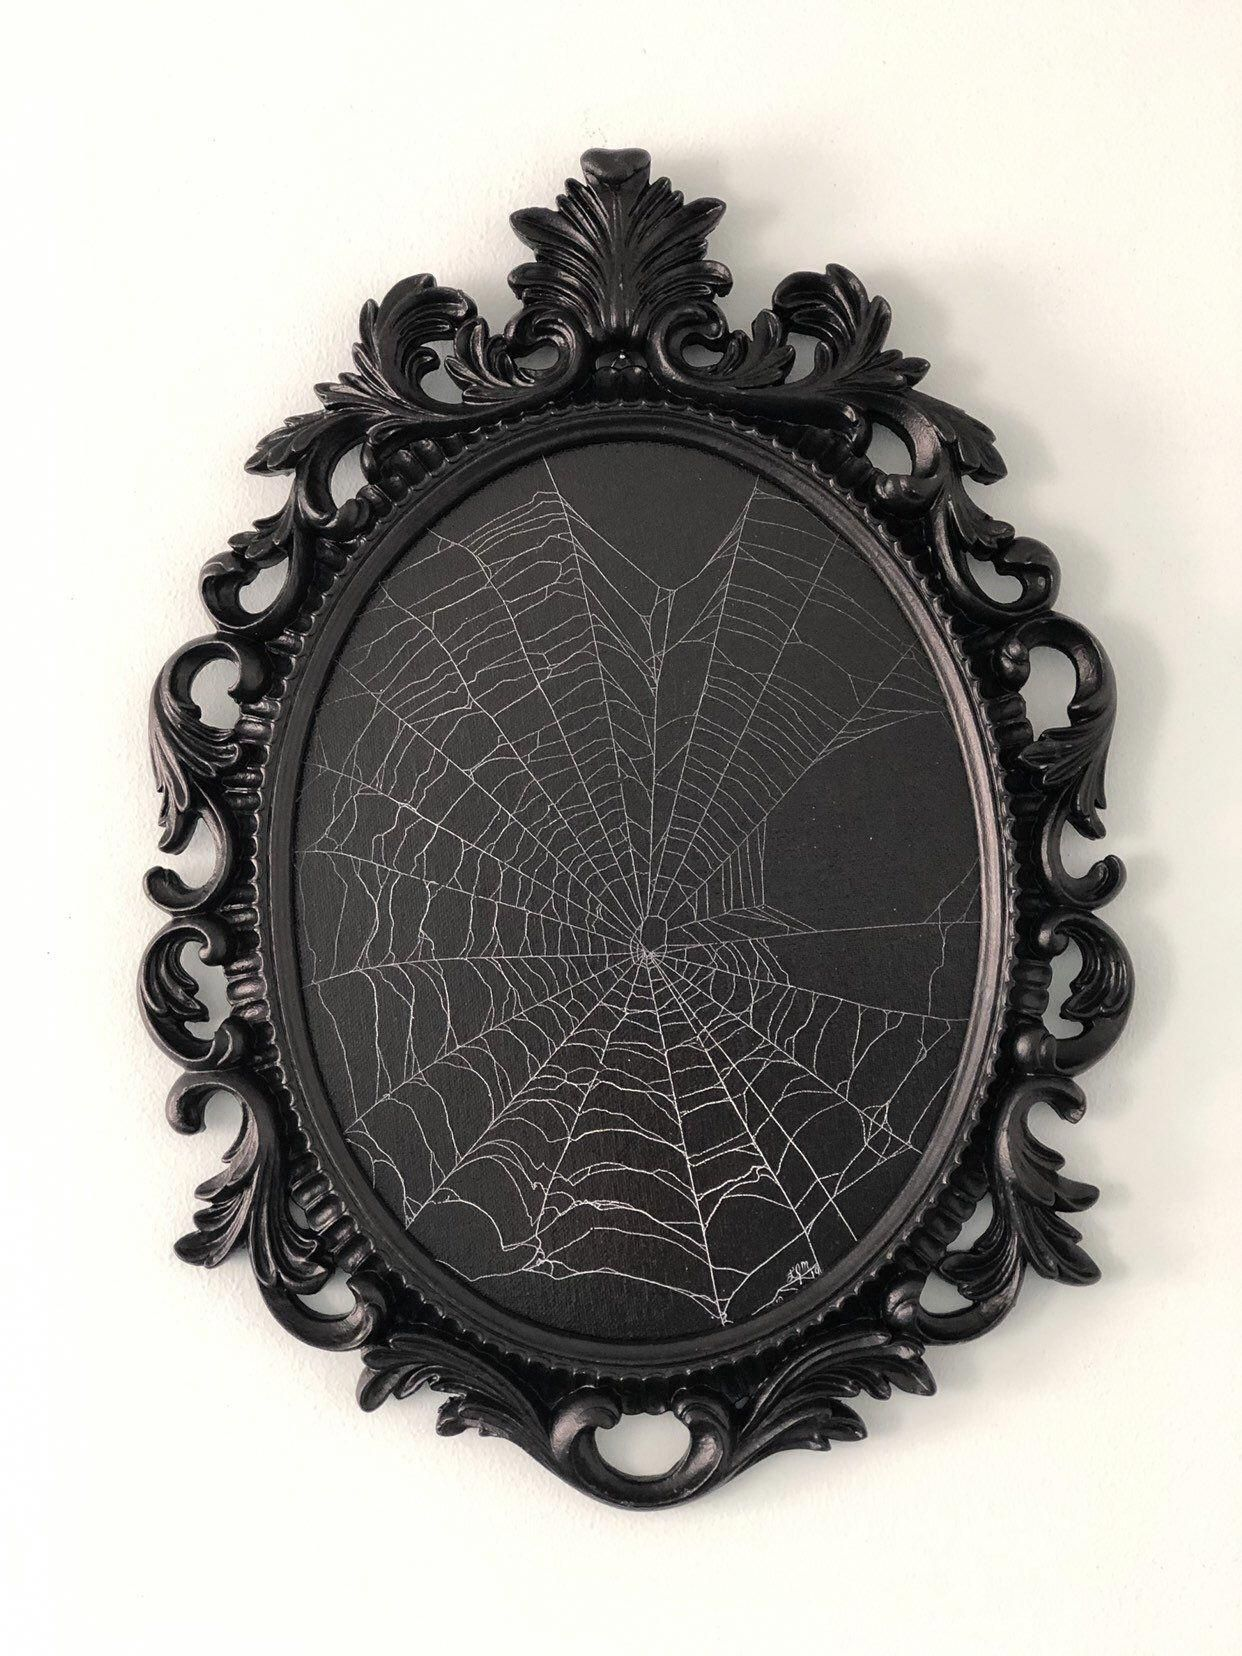 Excited to share this item from my etsy shop real spider